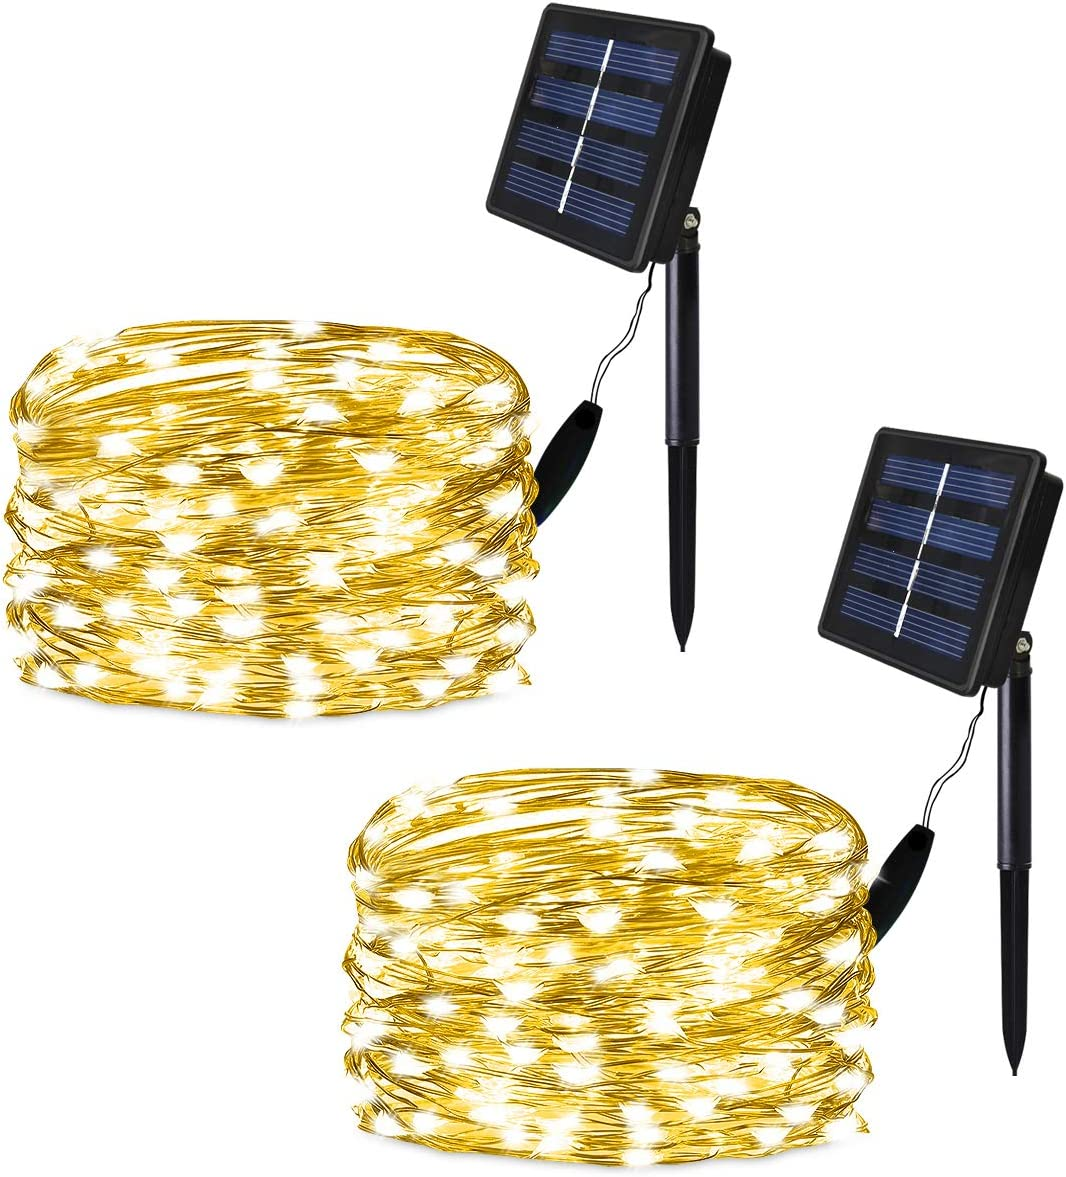 SOLARMKS Solar String Lights, Outdoor String Lights 100 LED Fairy Lights Waterproof Copper Wire Lights for Christmas,Patio,Lawn,Garden Decorations,Warm White,2 of Pack